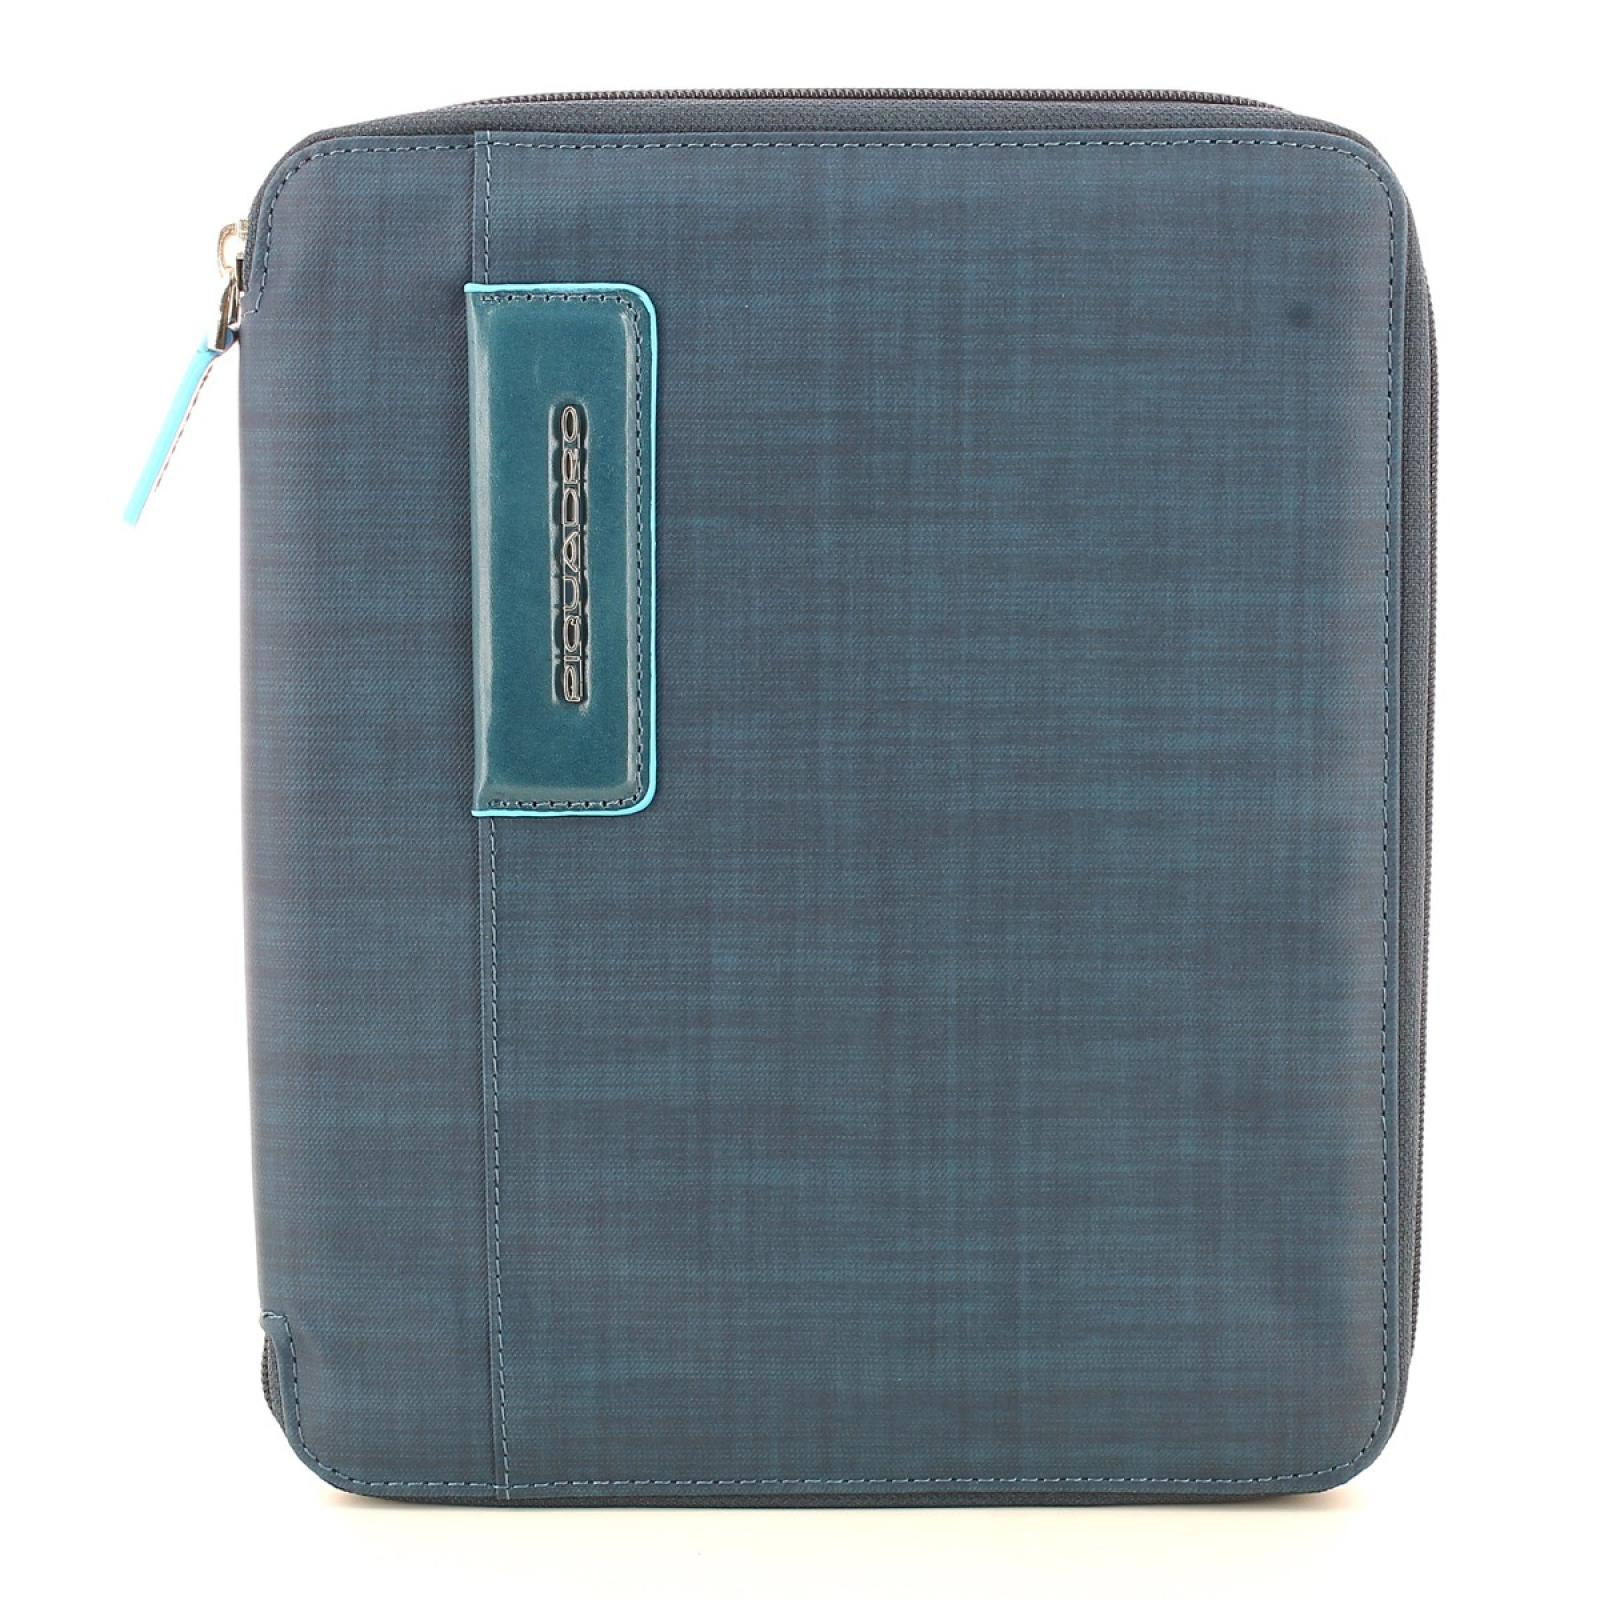 Document Holder Slim Bag